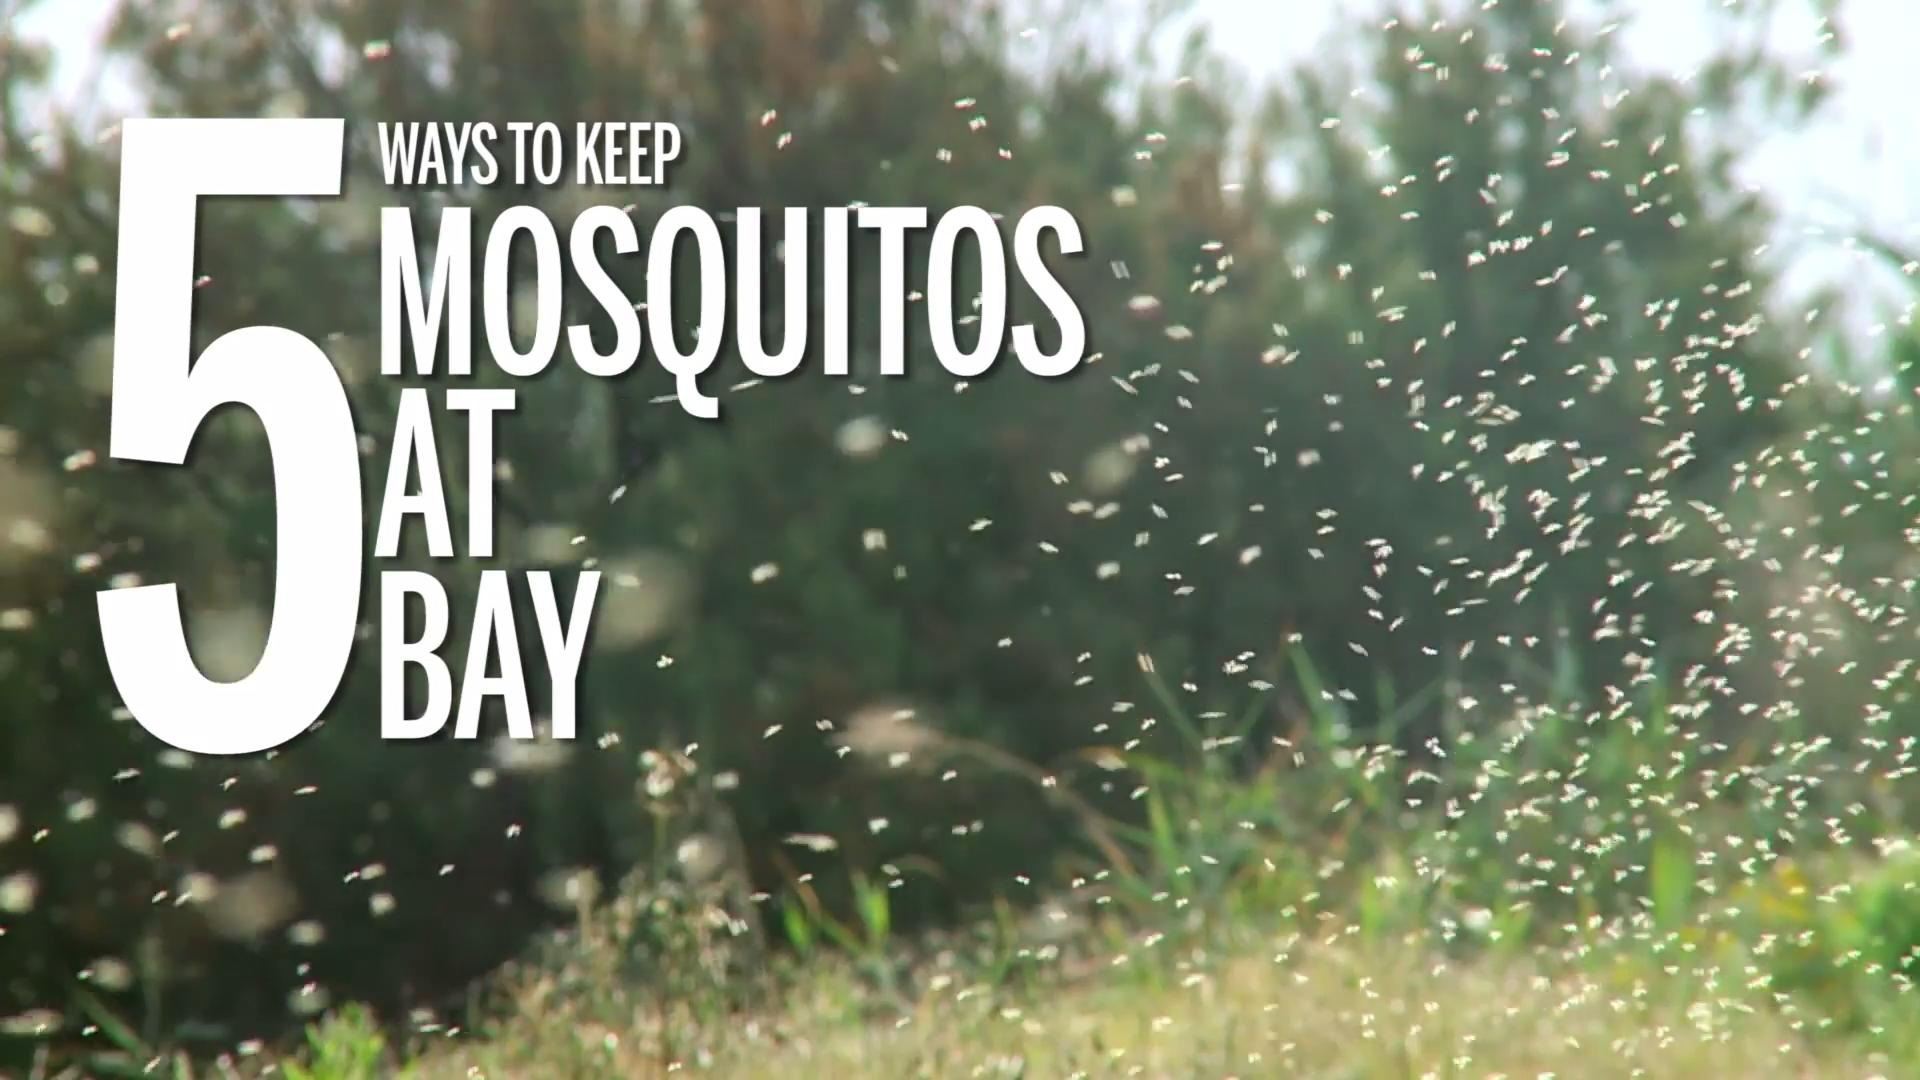 5 ways to keep mosquitoes at bay